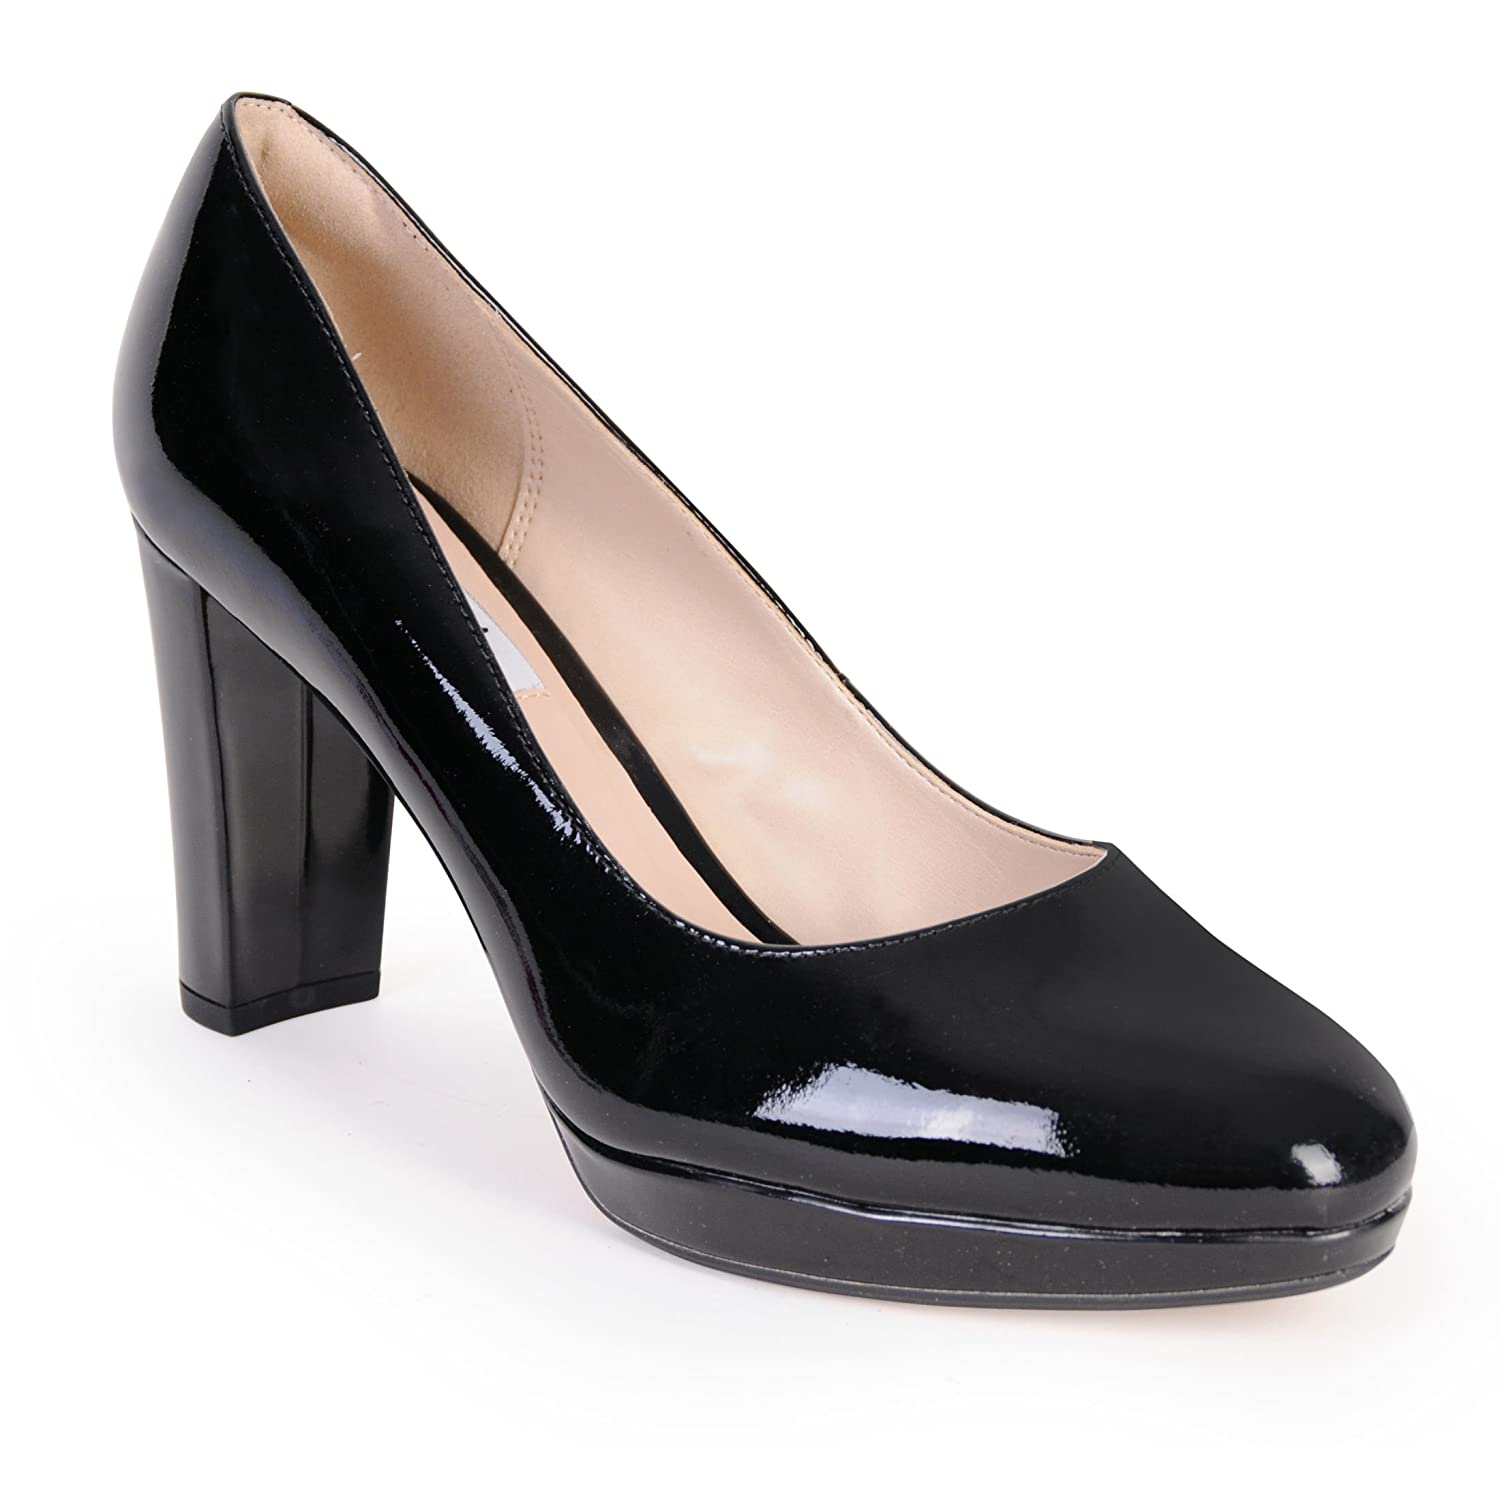 Clarks Women's Kendra Sienna Closed-Toe Pumps: Amazon.co.uk: Shoes & Bags